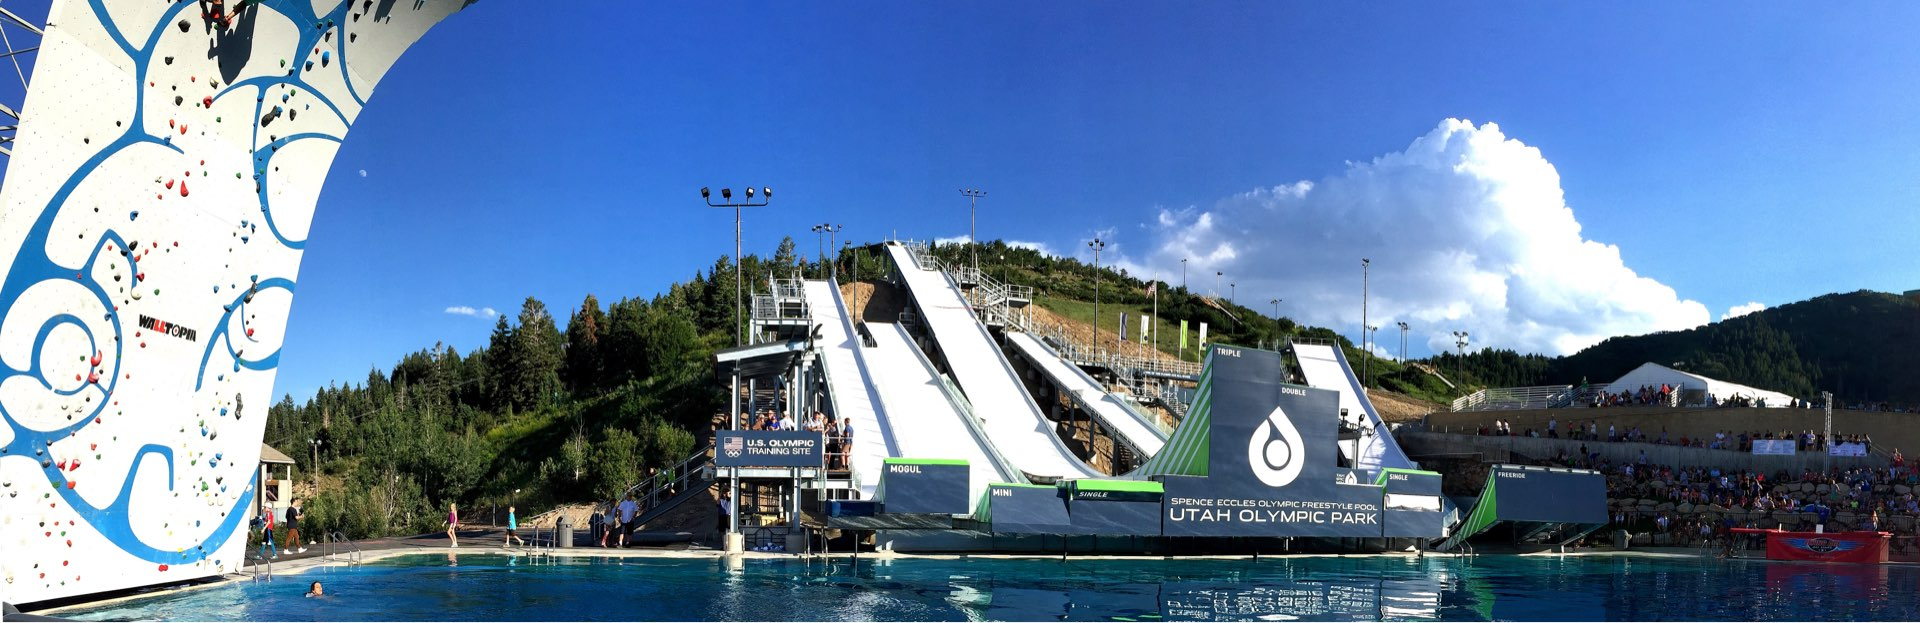 Utah Olympic Park Water Jumps, Sport & Recreation architectural design by Elliott Workgroup